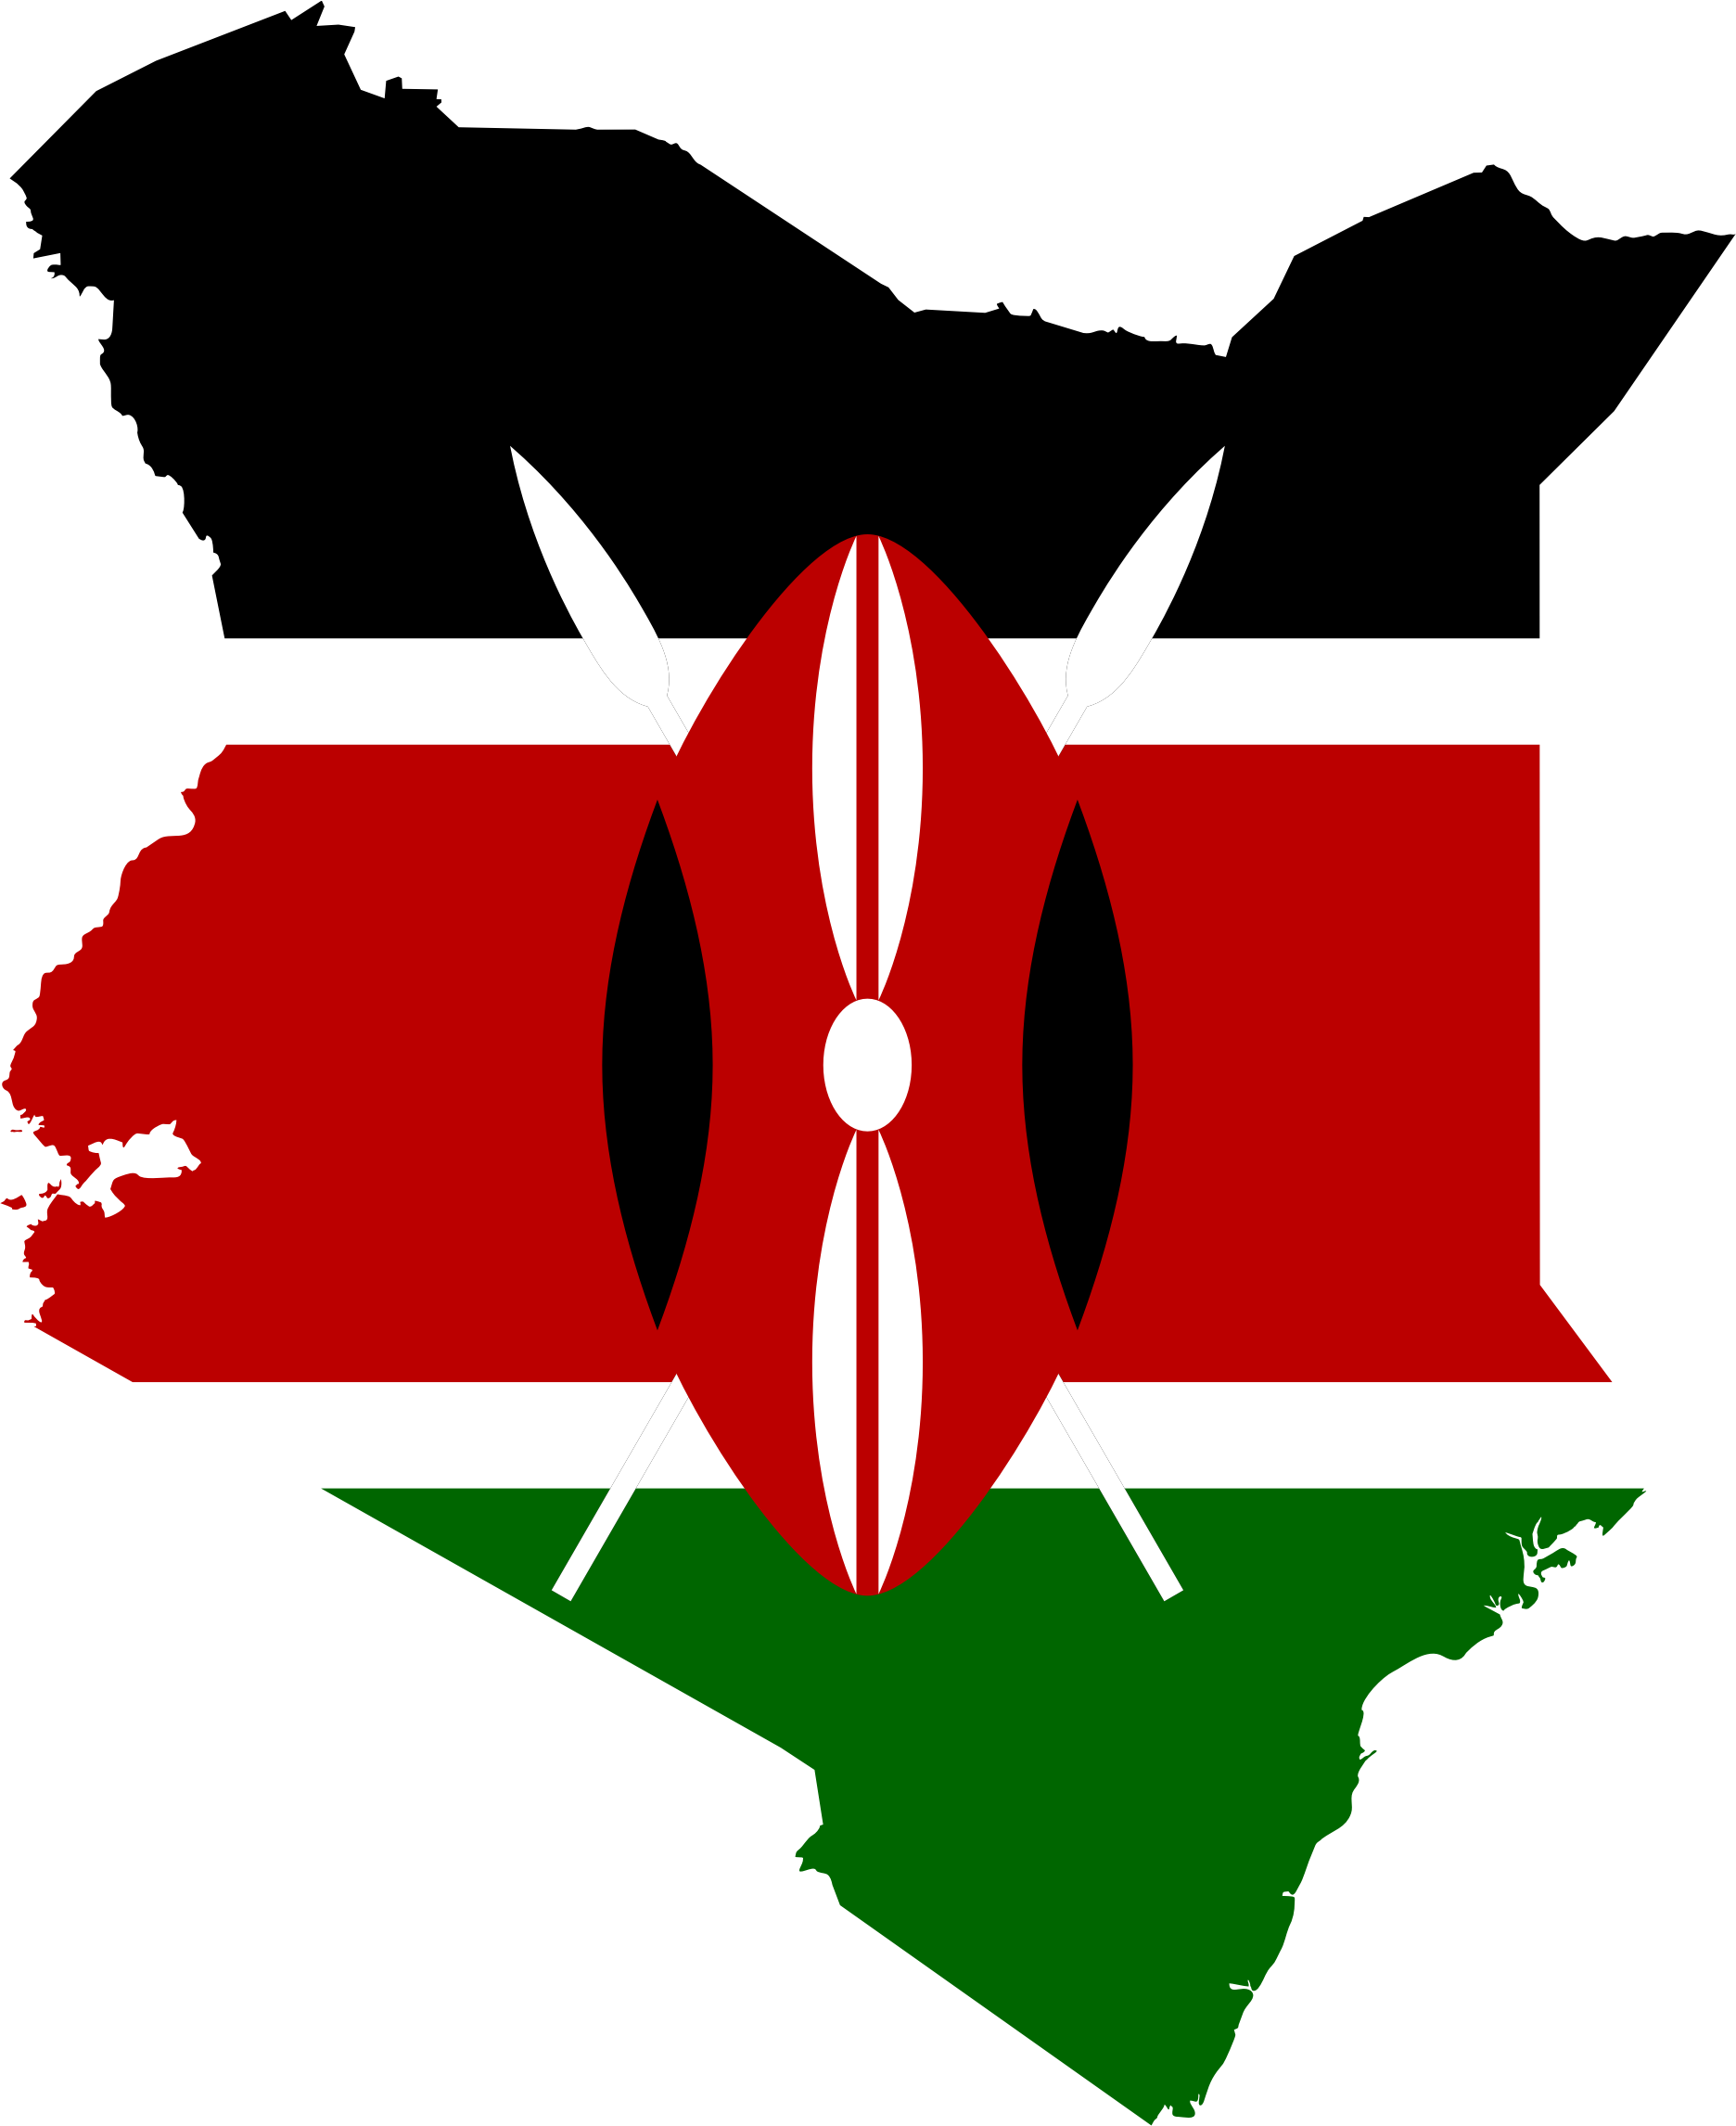 Kenya Flag Map by GDJ